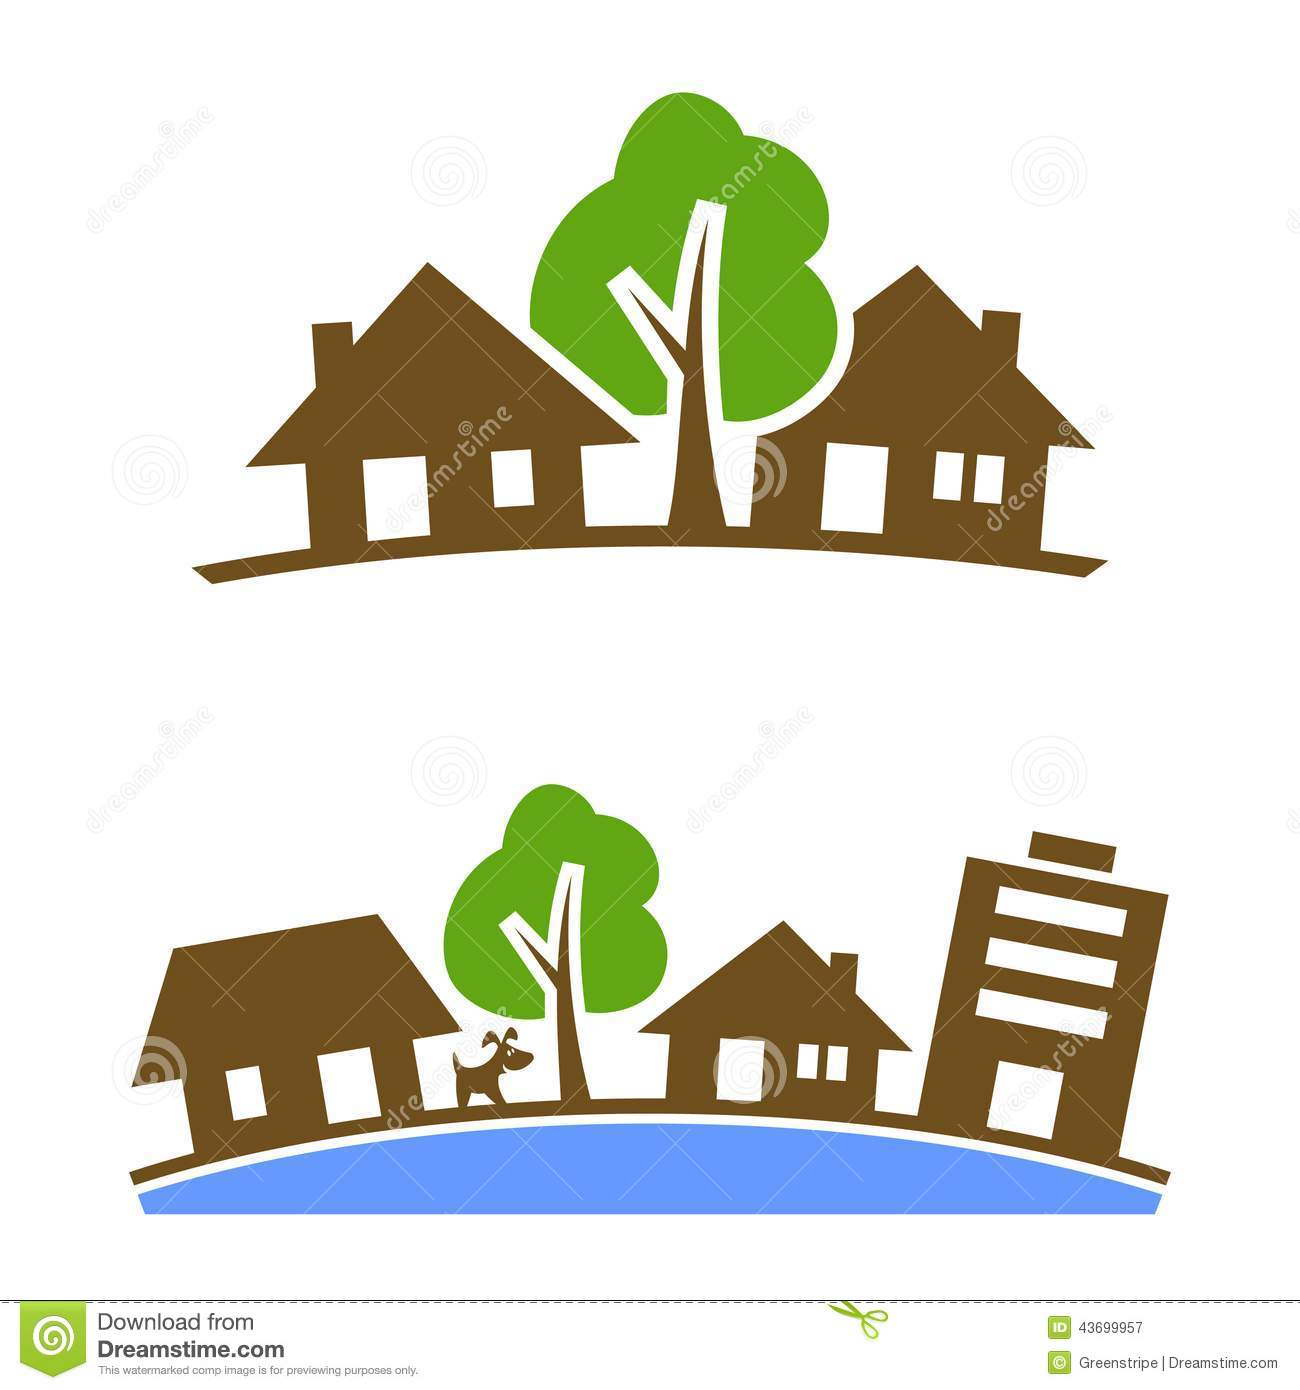 Country houses, Silhouette and House vector on Pinterest